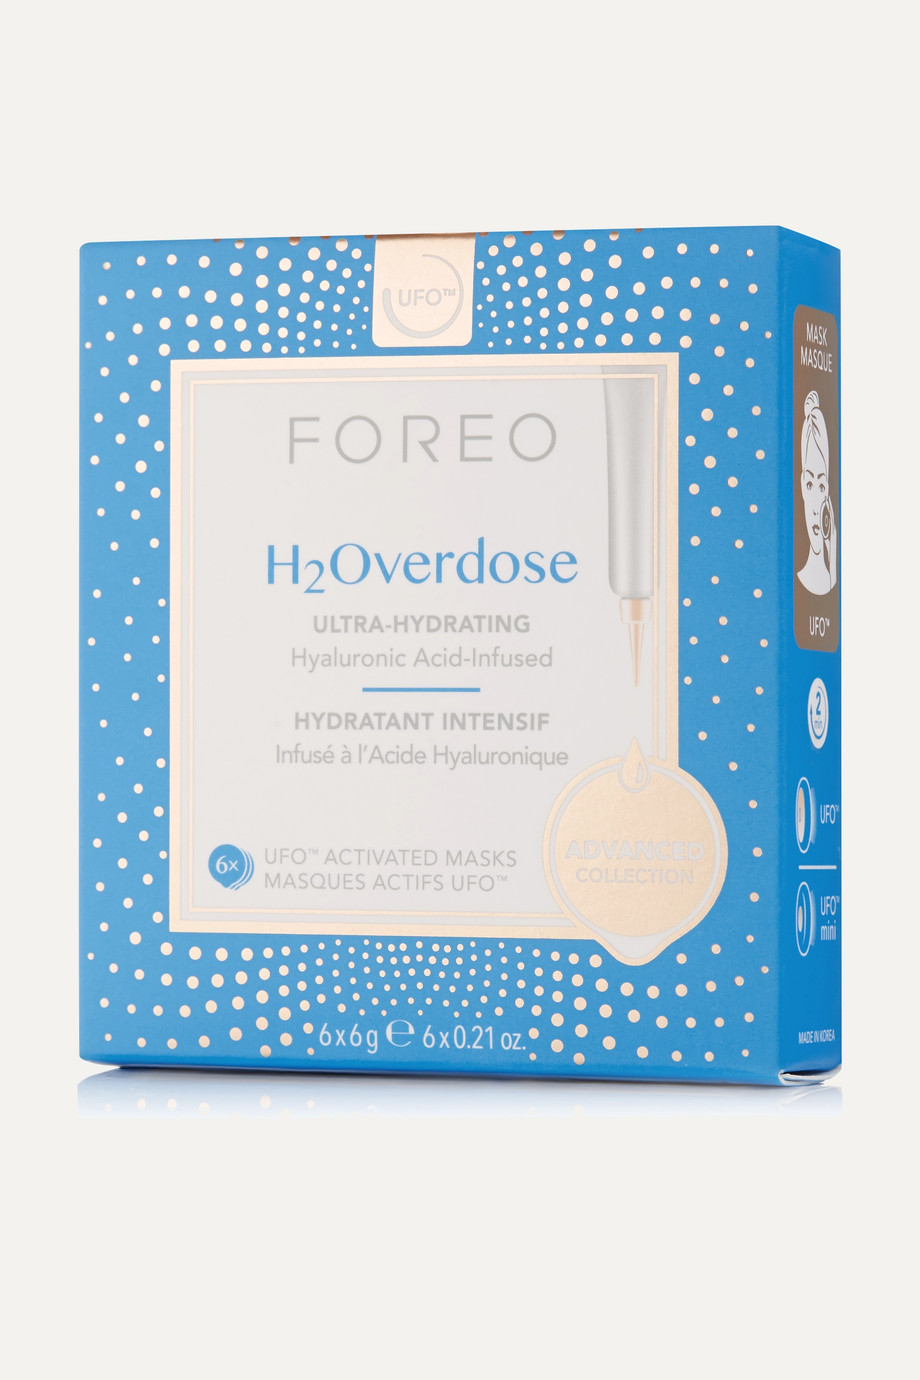 FOREO UFO Activated Masks - H2Overdose x 6